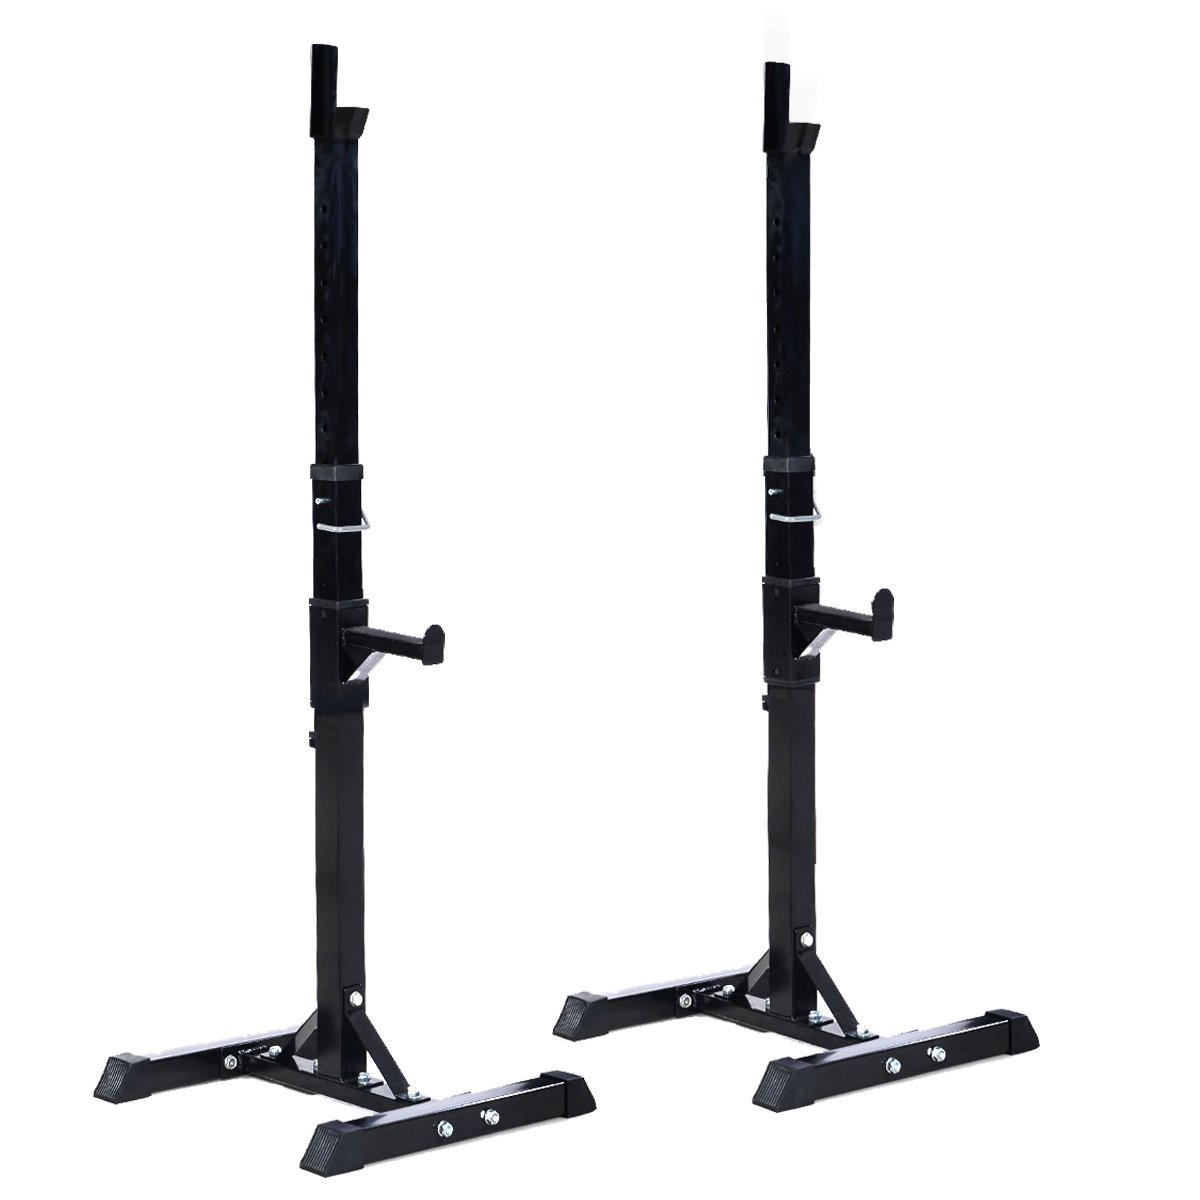 Goplus Pair of Adjustable Standard Squat Stands 42''- 67'' Rack Solid Steel Portable Barbell Dumbbell Power Rack Home Gym by Goplus